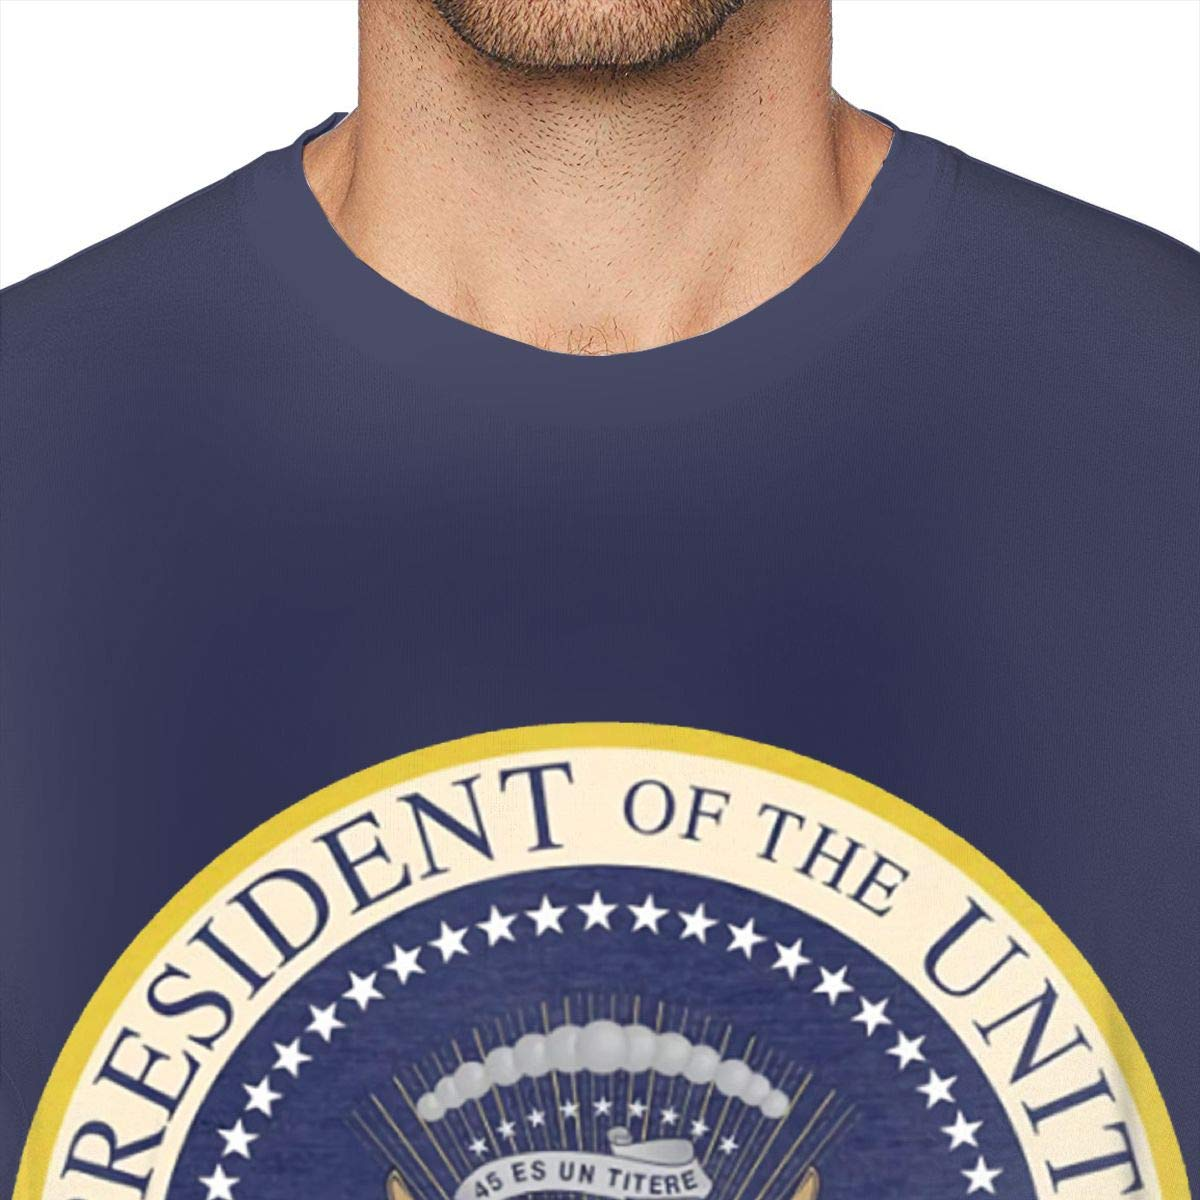 45 ES Un Titere President Seal T-Shirts Graphic T-Shirts Gift Tee Funny T-Shirts